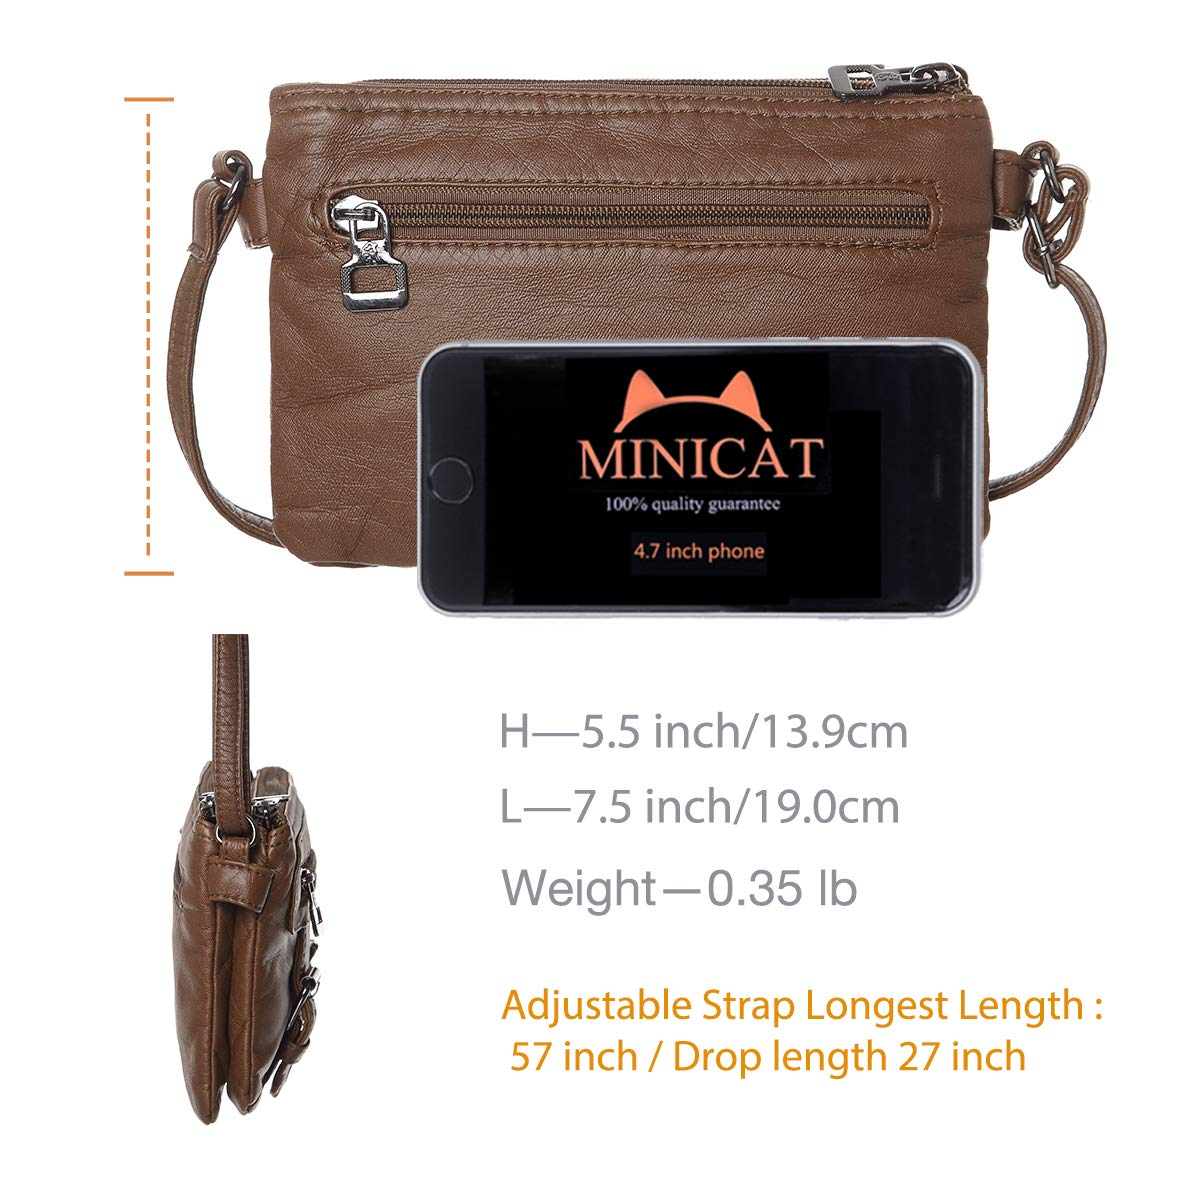 Women Soft Synthetic Leather Small Crossbody Bag Mini Crossbody Cell Phone Purse Wallet(Brown) by MINICAT (Image #6)